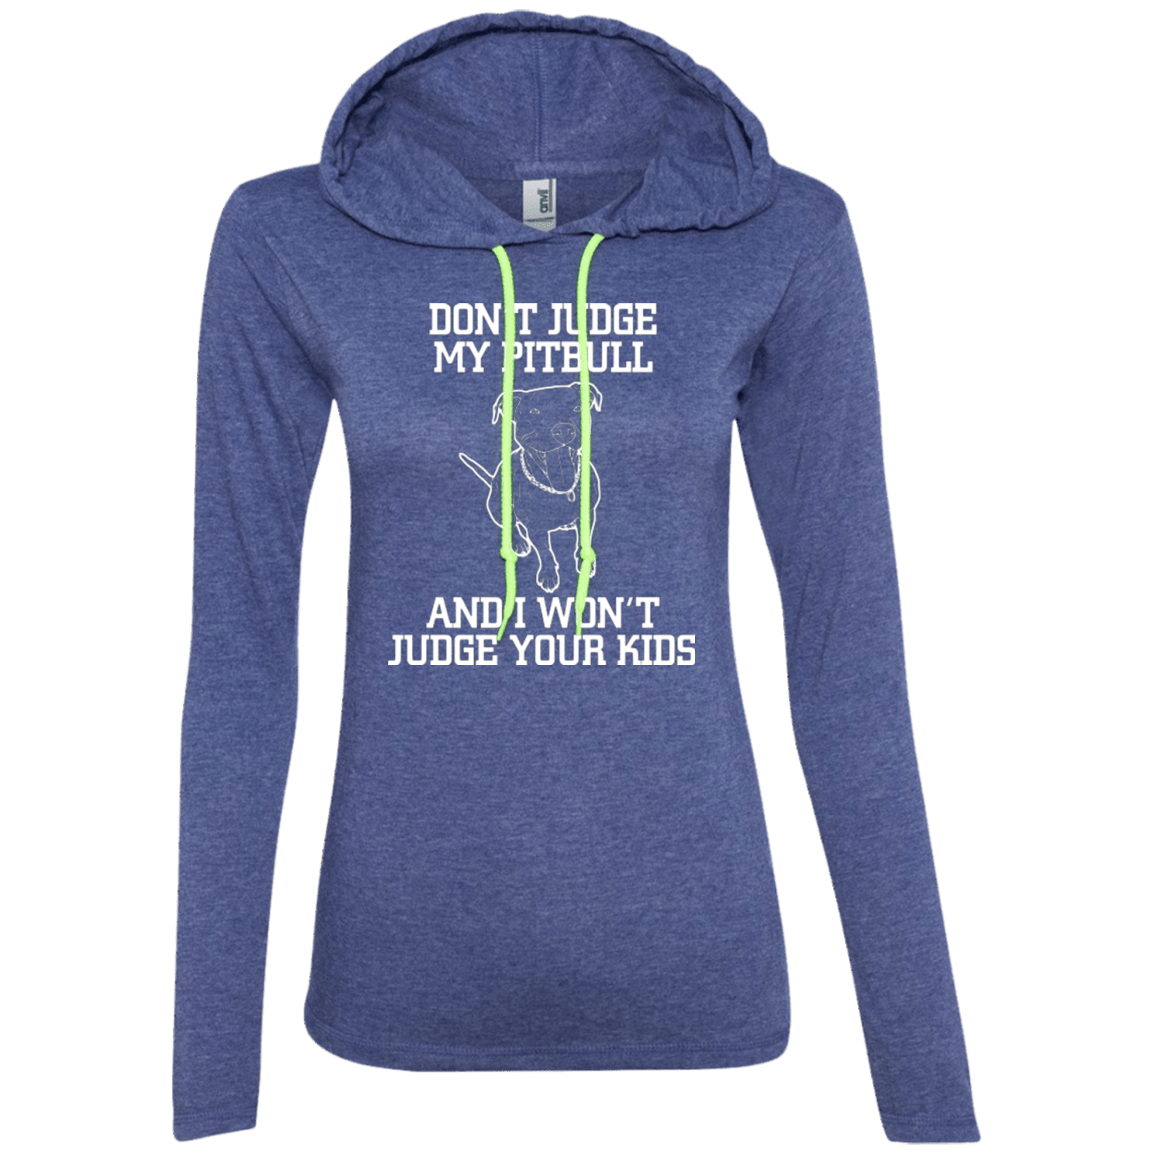 Don't Judge - 887L Anvil Ladies' LS T-Shirt Hoodie Heather Blue/Neon Yellow Small - Little Pit Shop